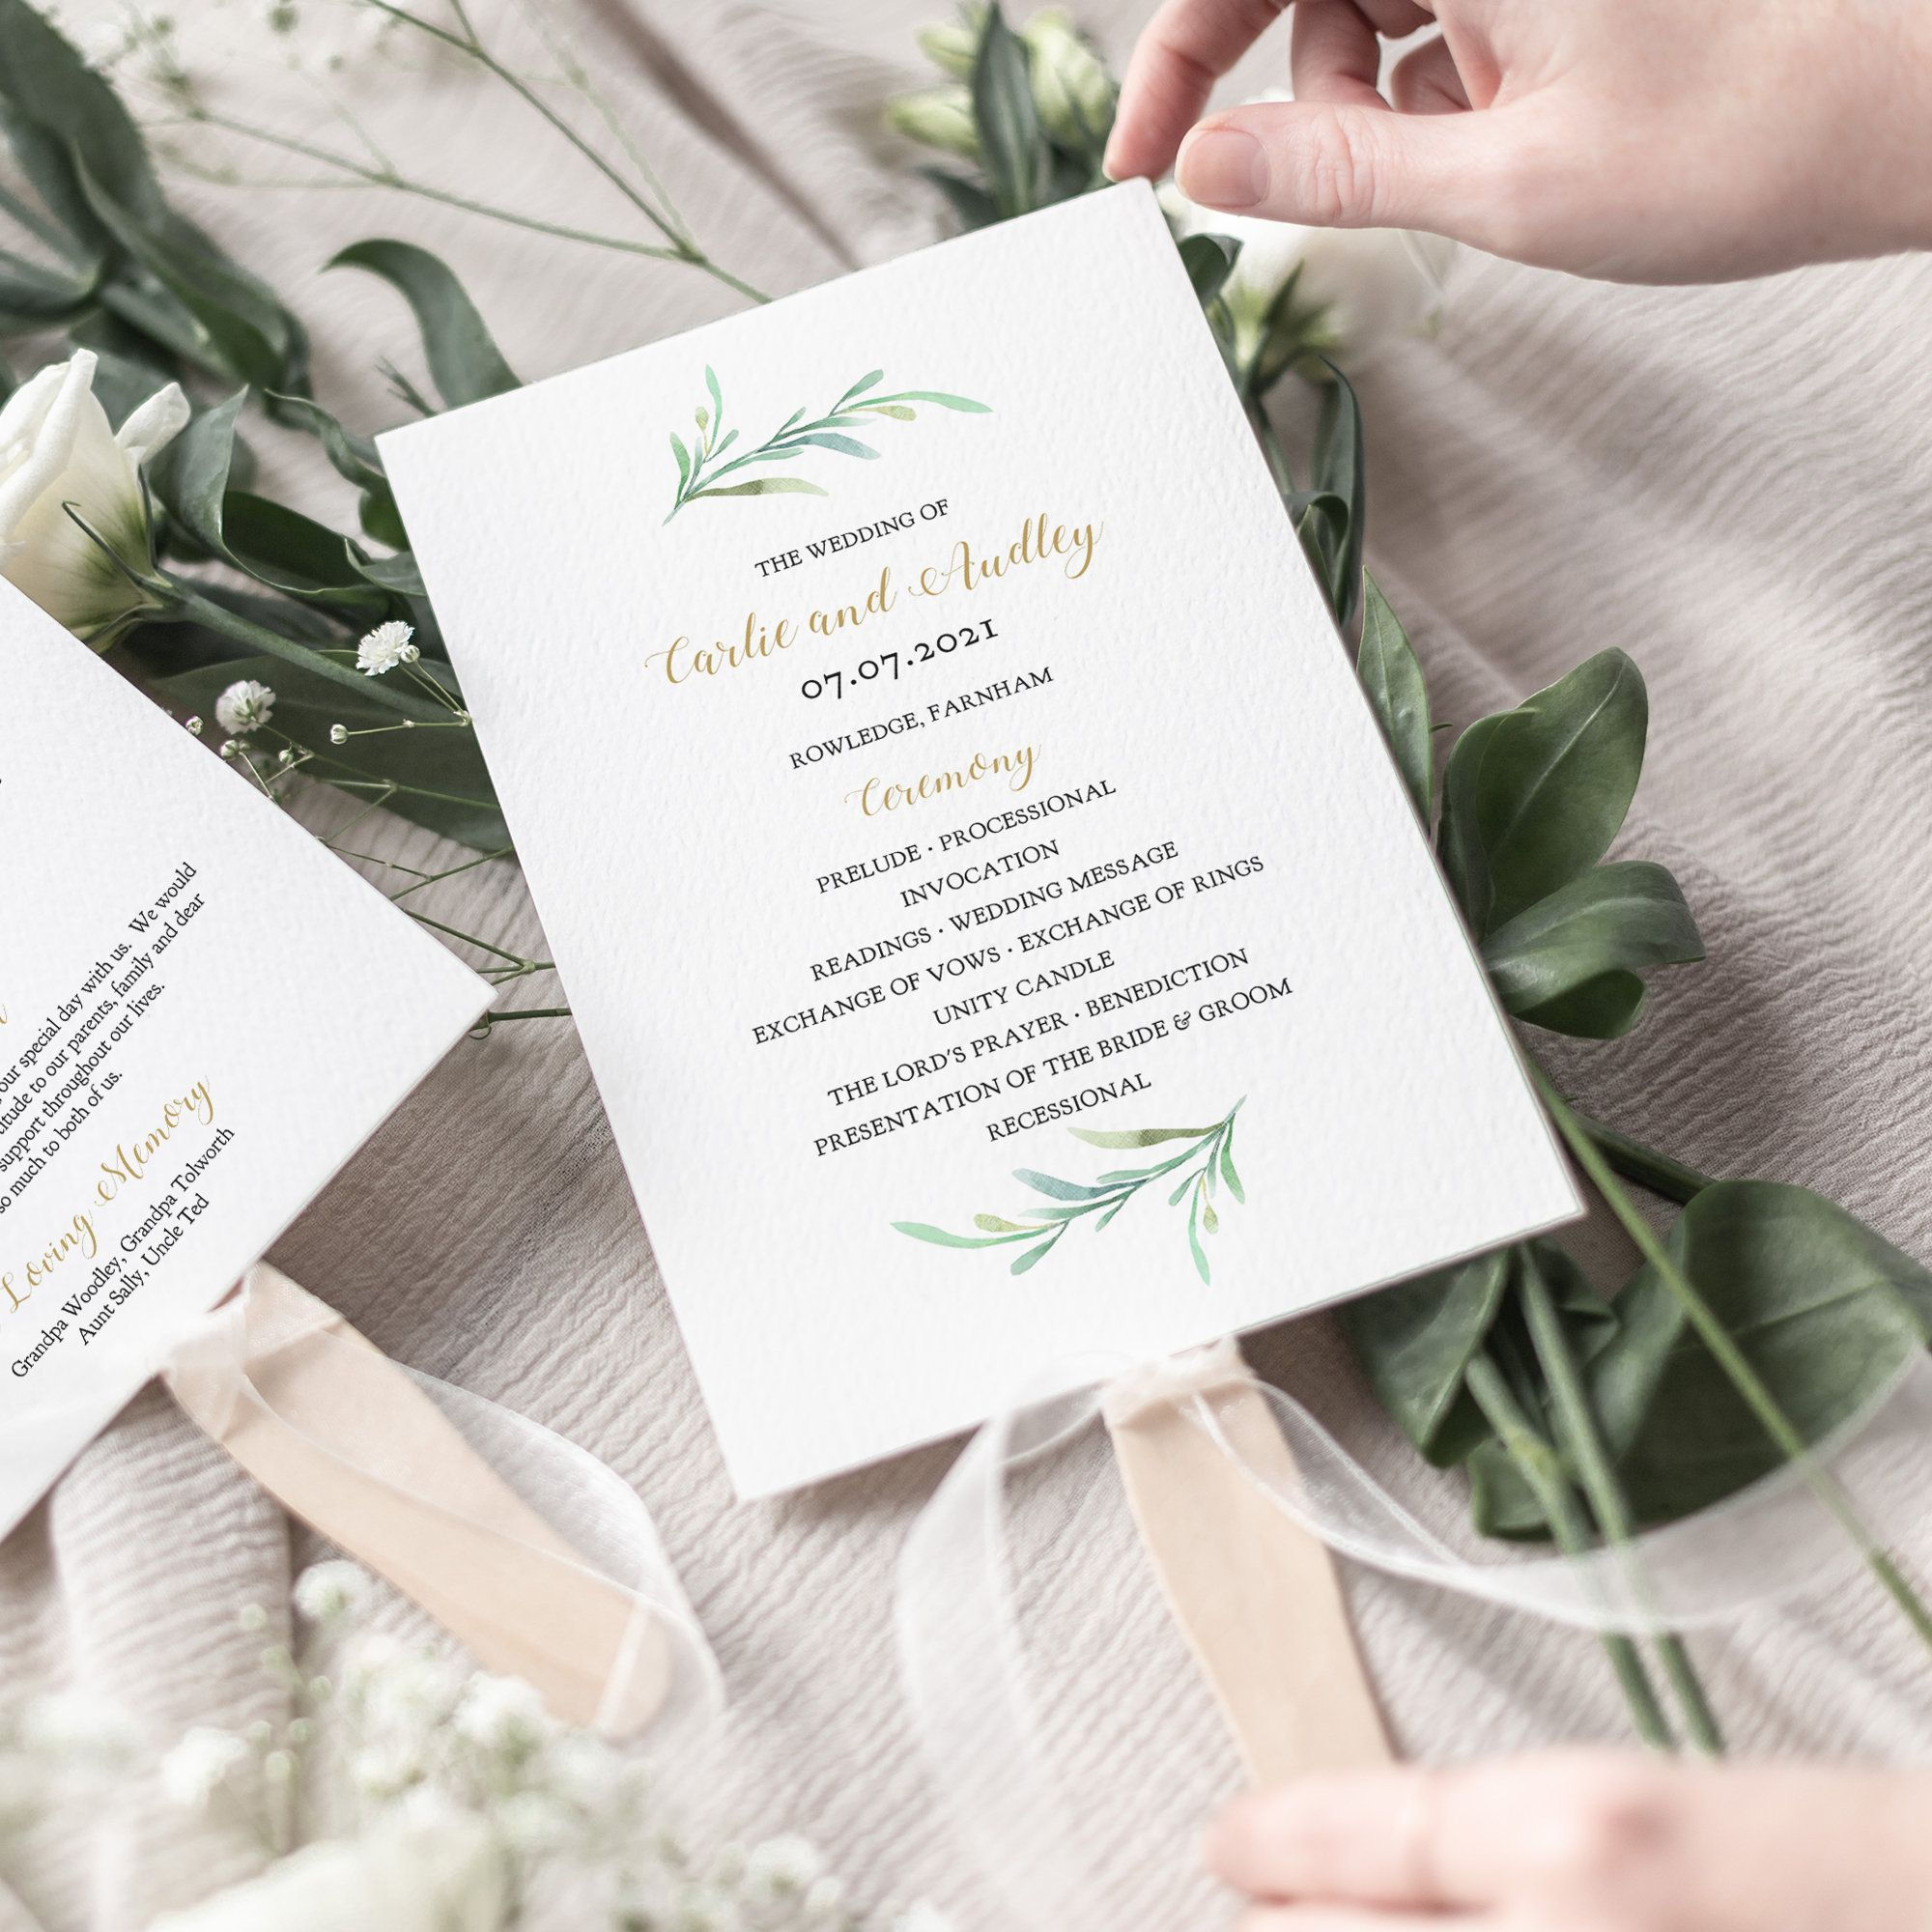 007 Stunning Free Printable Wedding Program Paddle Fan Template Picture  TemplatesFull